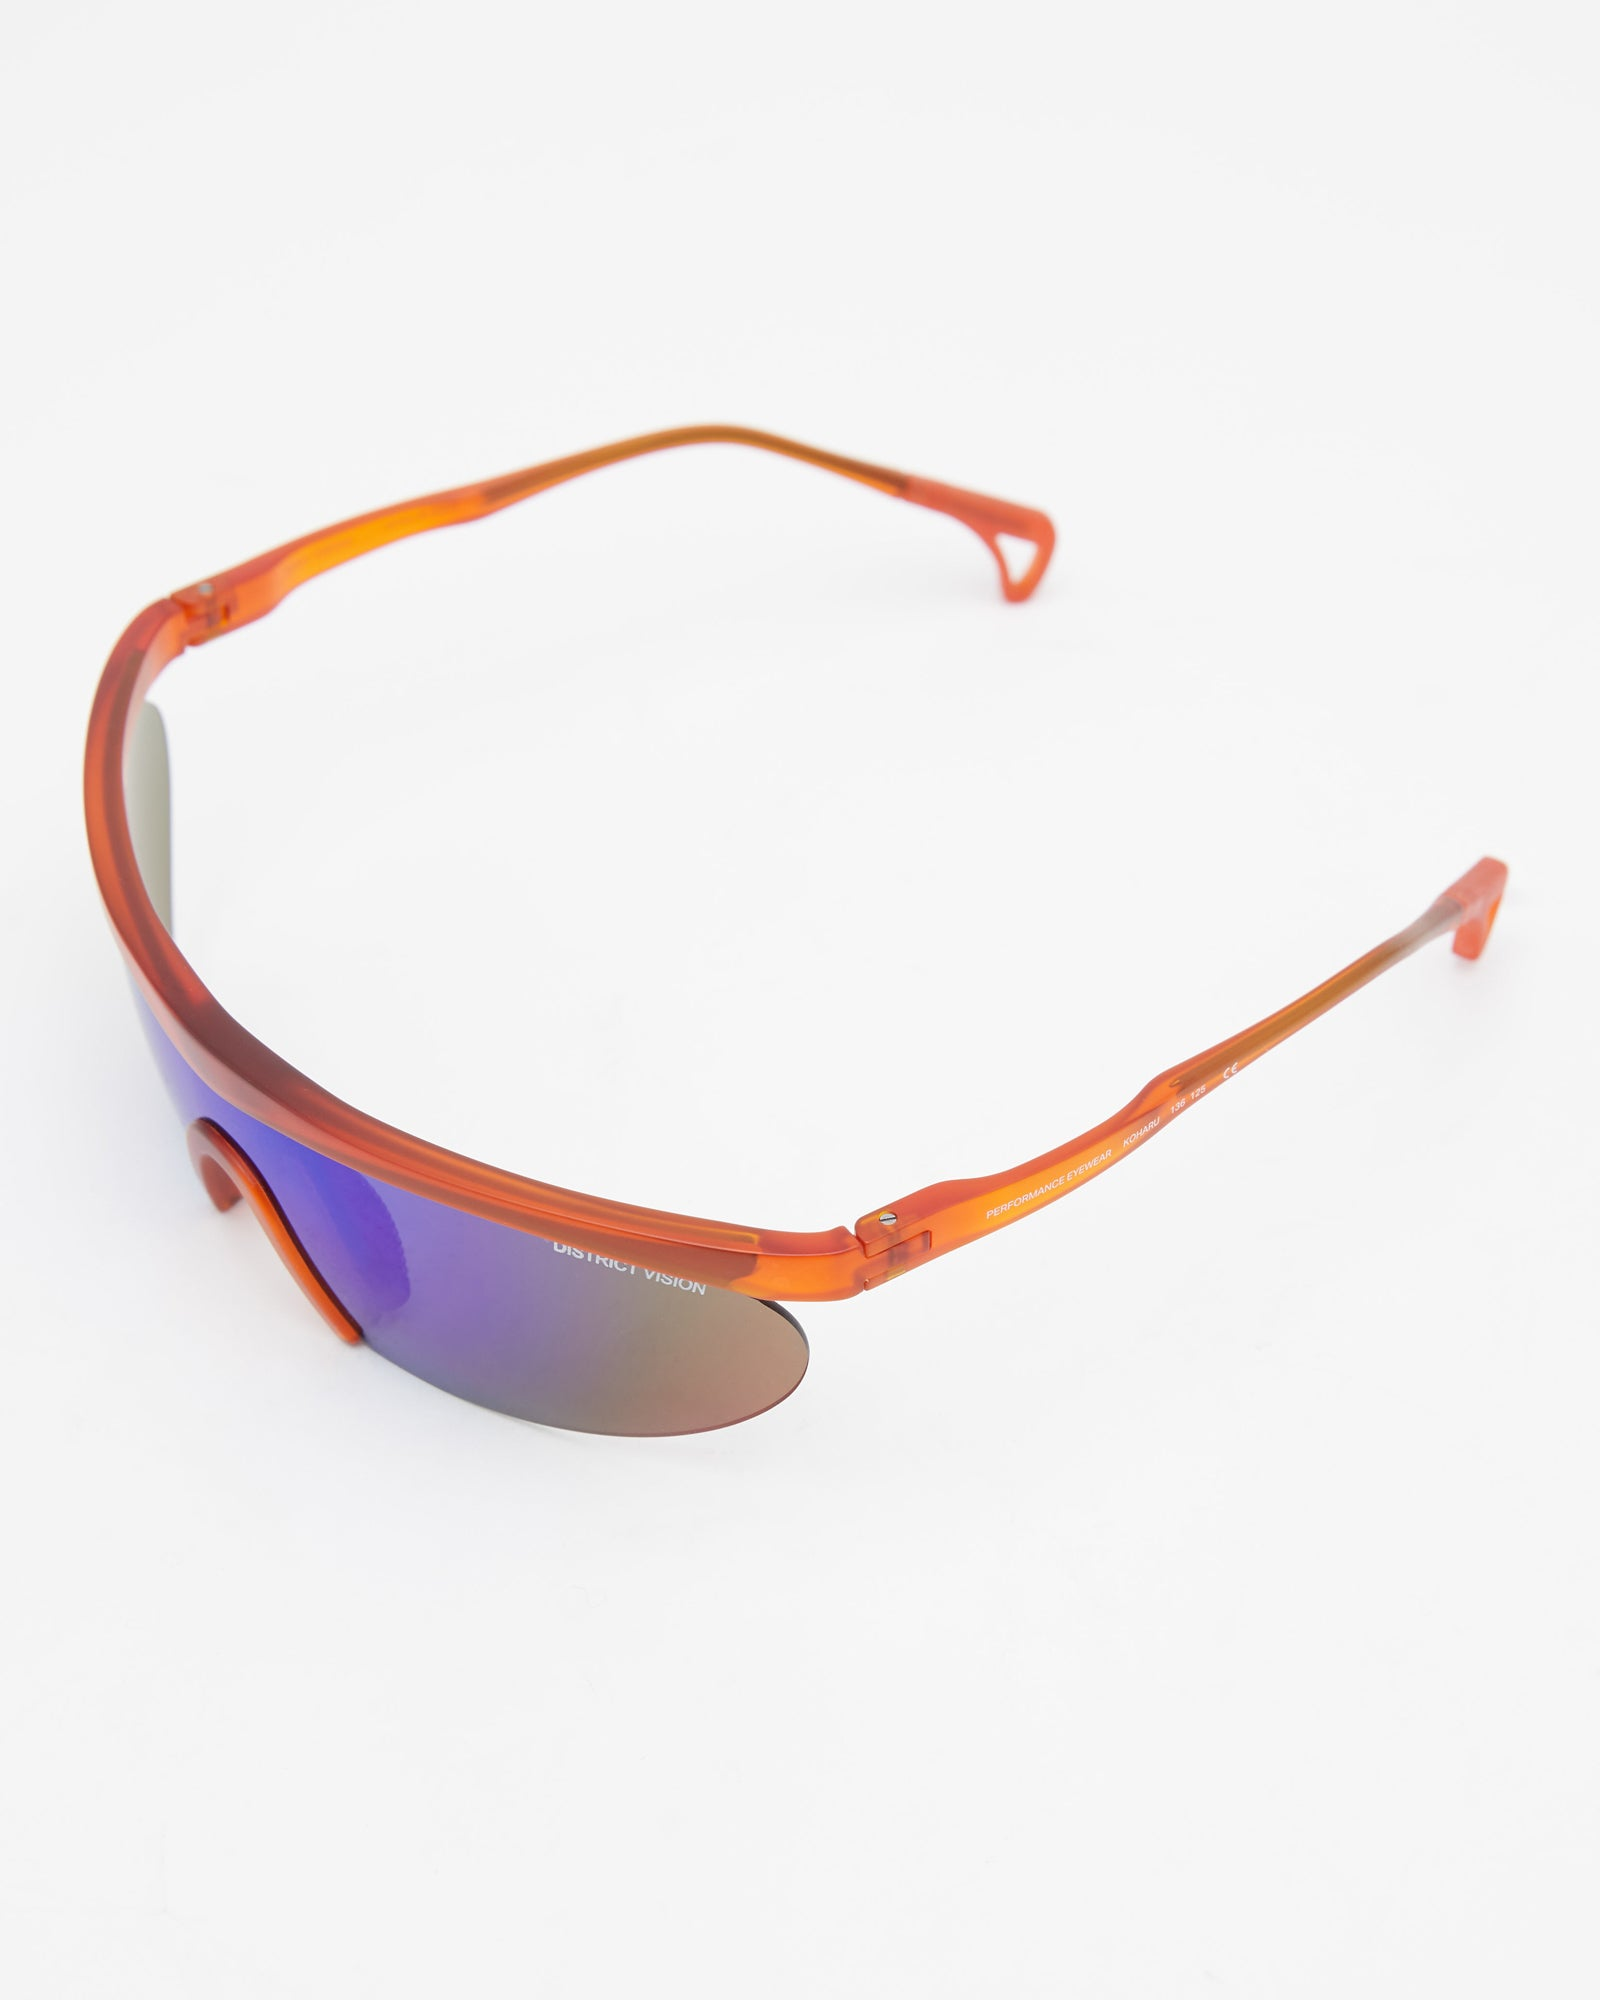 Koharu Glasses in Orange